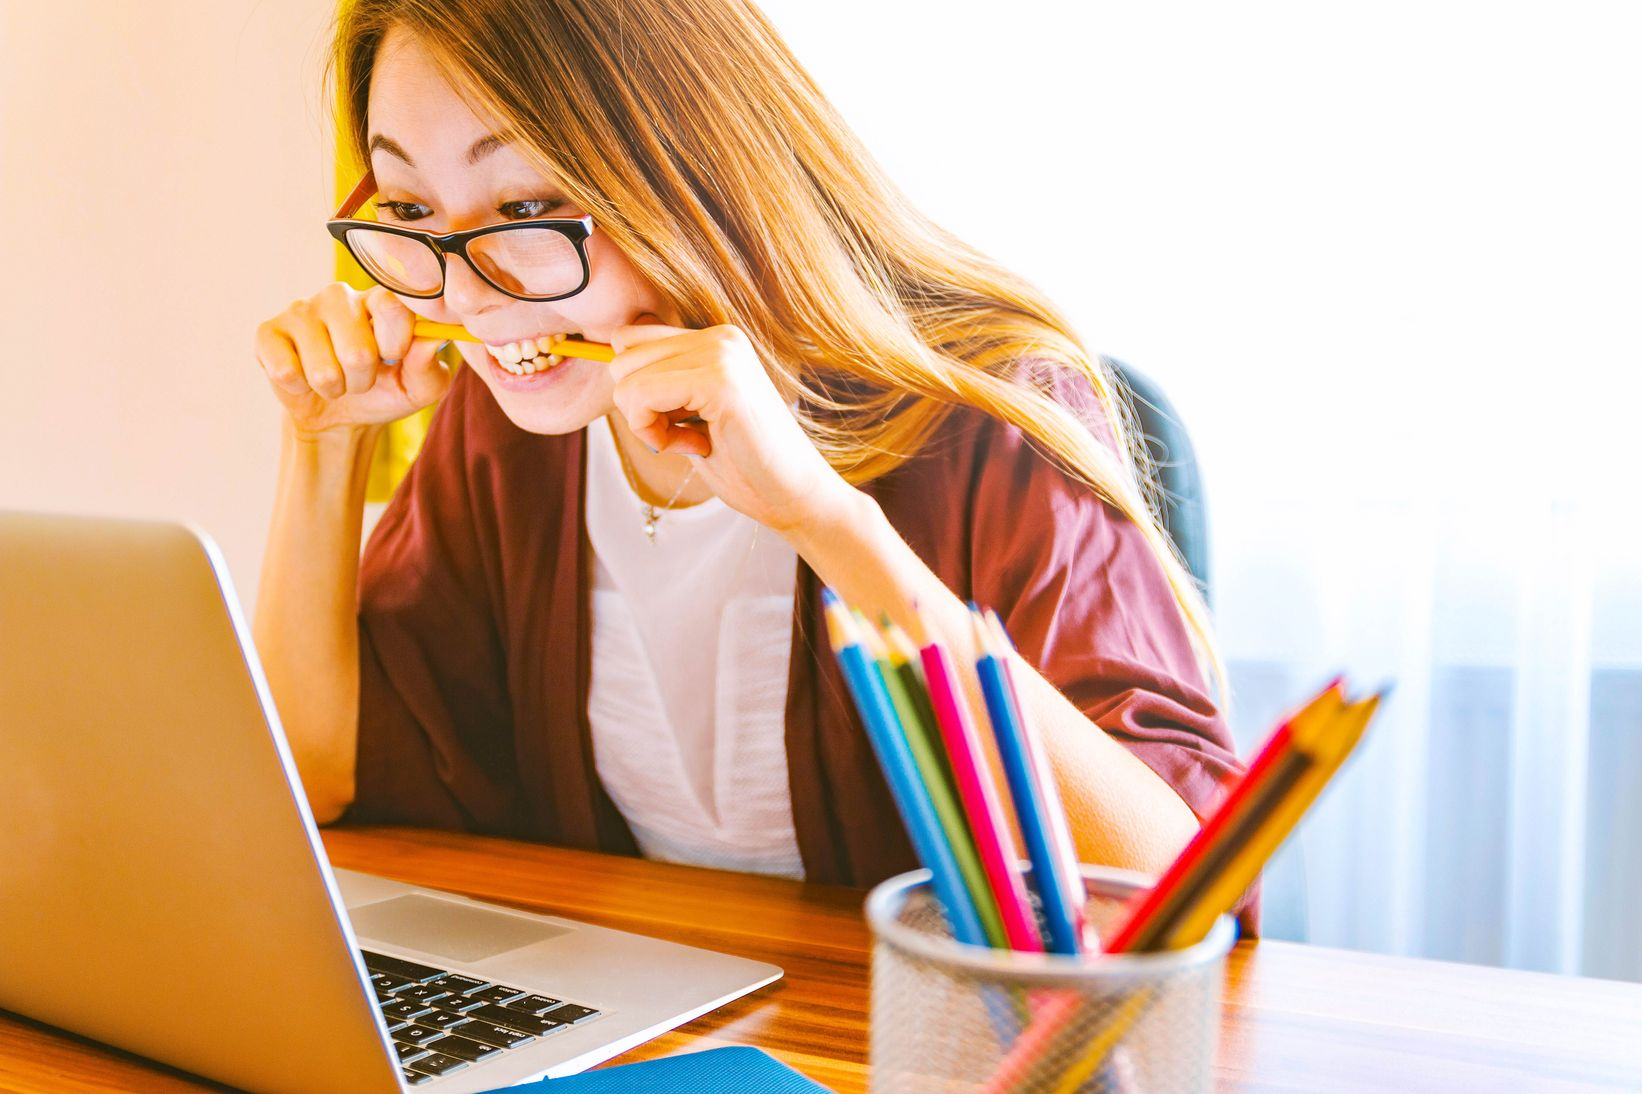 A bespectacled woman staring at her laptop while holding a pencil between her teeth,